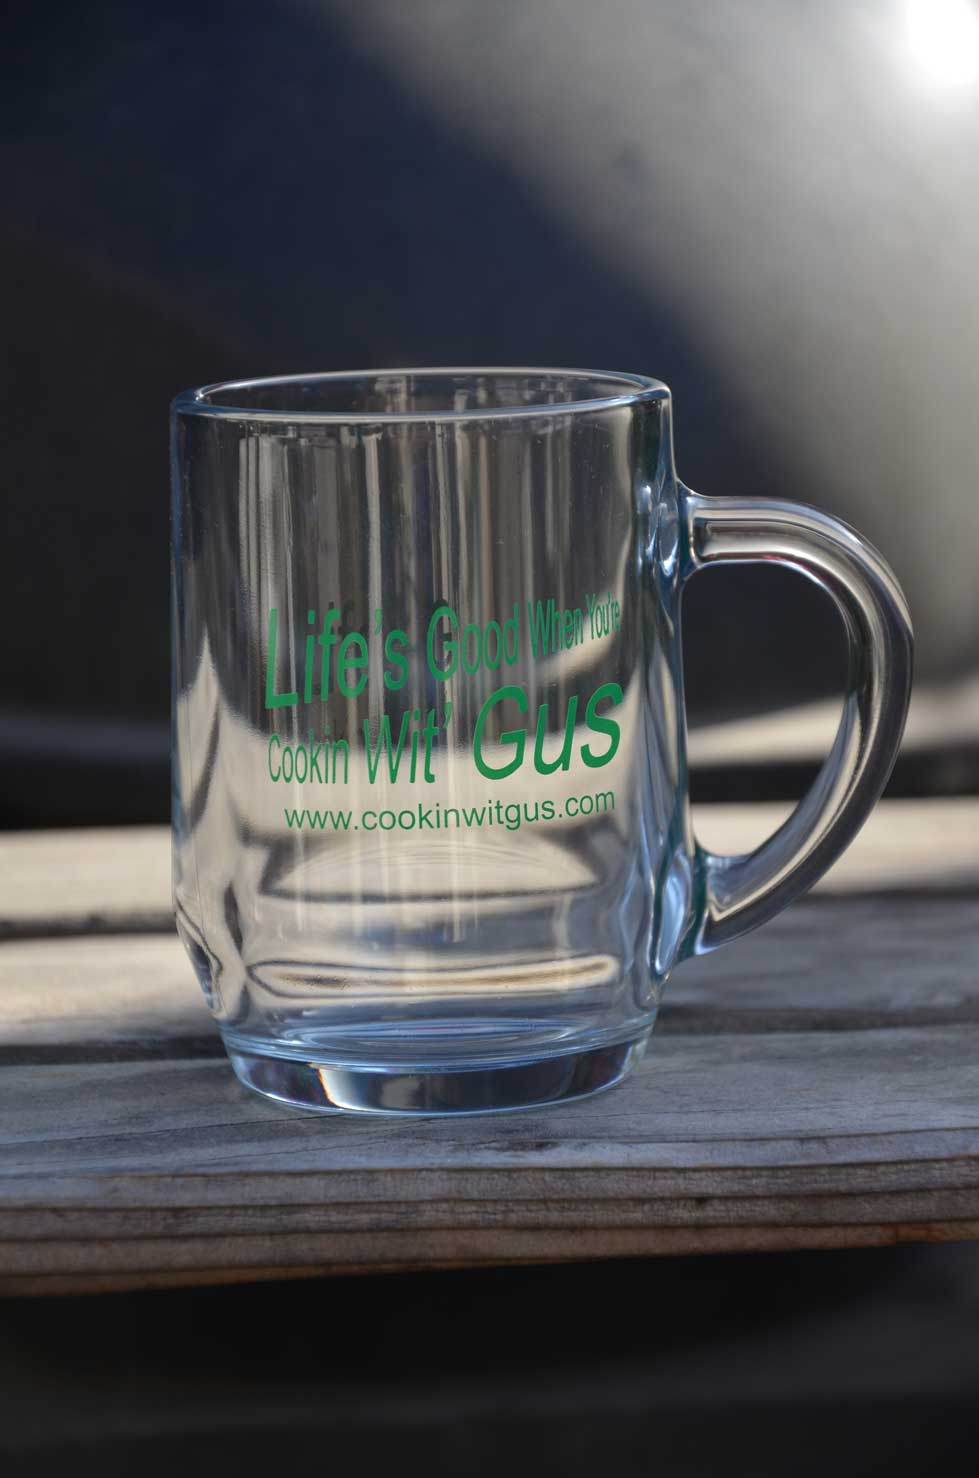 10 oz. Upright Mug